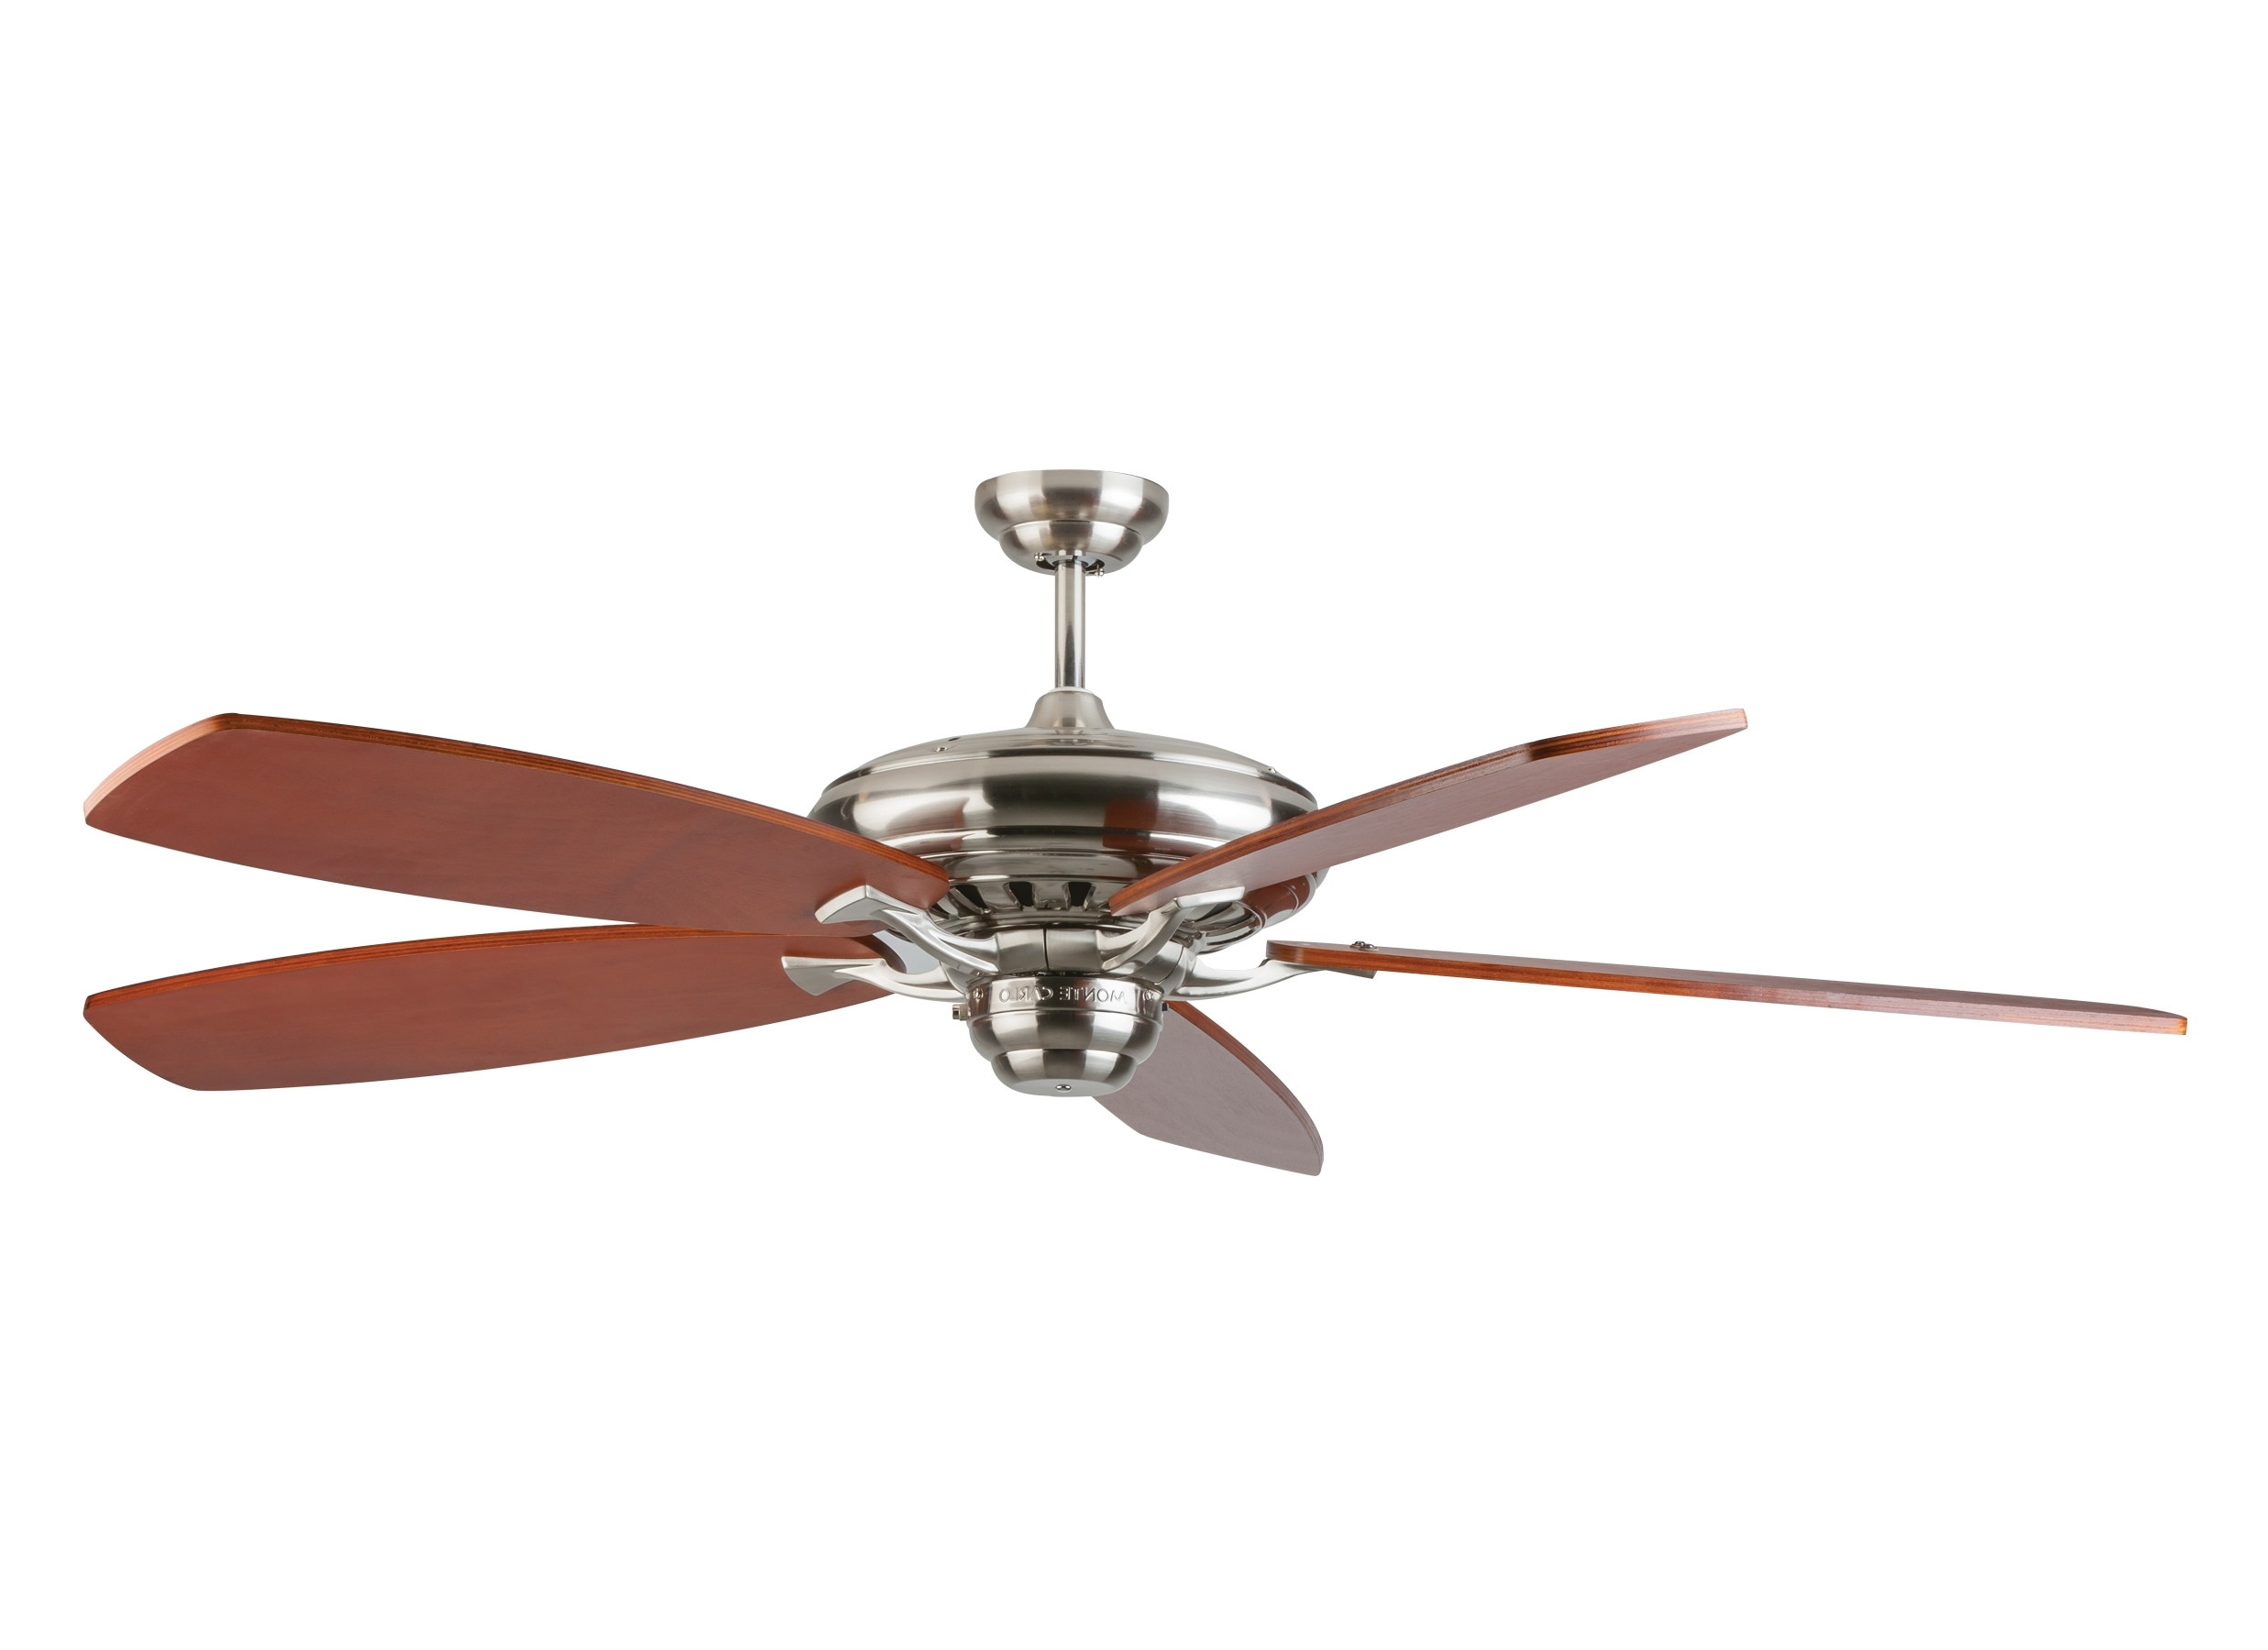 48 Outdoor Ceiling Fans With Light Kit Pertaining To Popular Ceiling Fanthe Monte Carlo Fan Company (View 18 of 20)